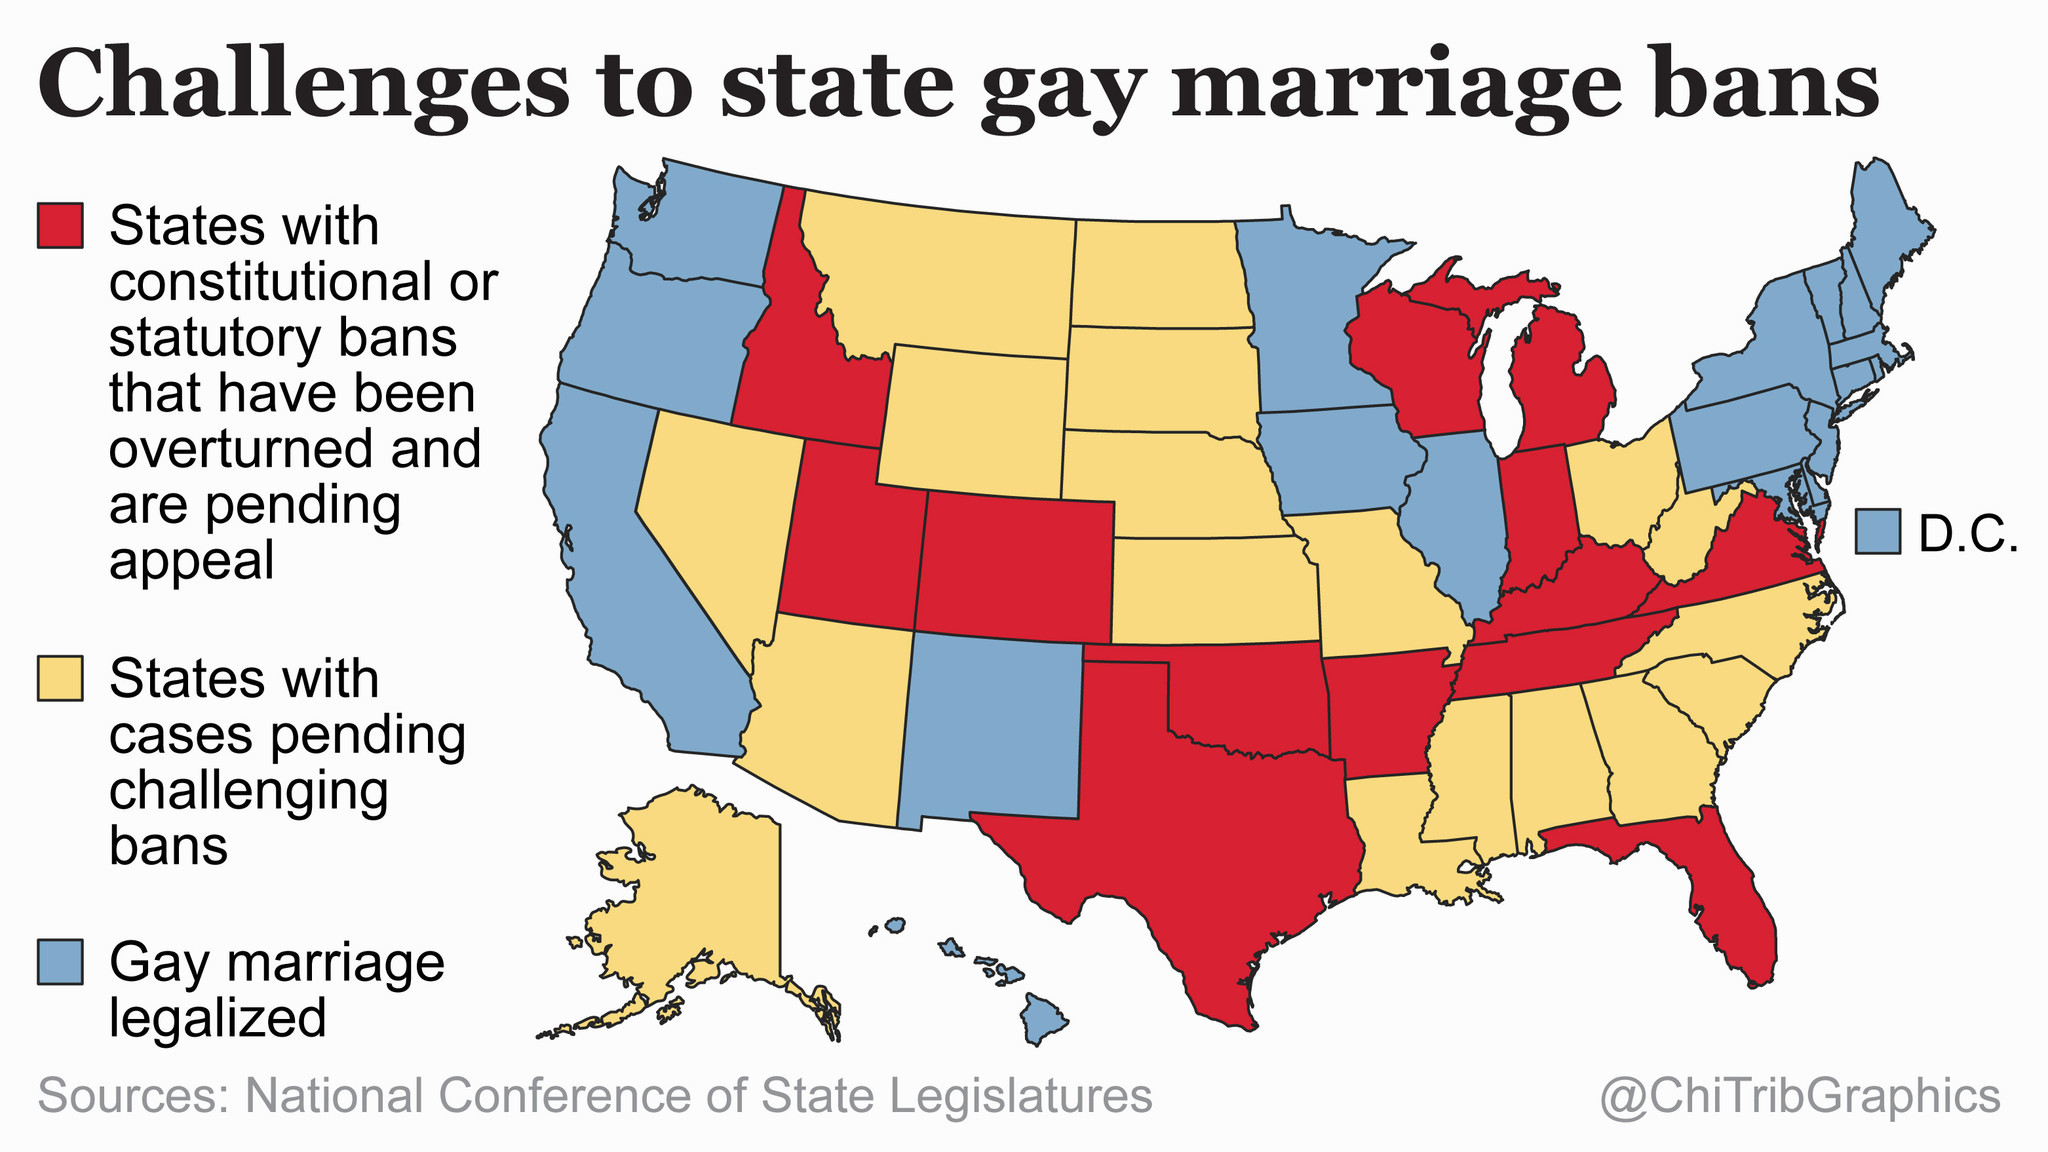 Challenges to state marriage bans (map) - Chicago Tribune on addiction map, birth control map, 9gag map, family interaction map, life calling map, modernism map, new moon map, inbreeding map, food issues map, lawyers map, doctrine map, long trip map, metaphysical map, stages of life map, sovereignty map, numerology map, heredity map, love wins map, middle class map,